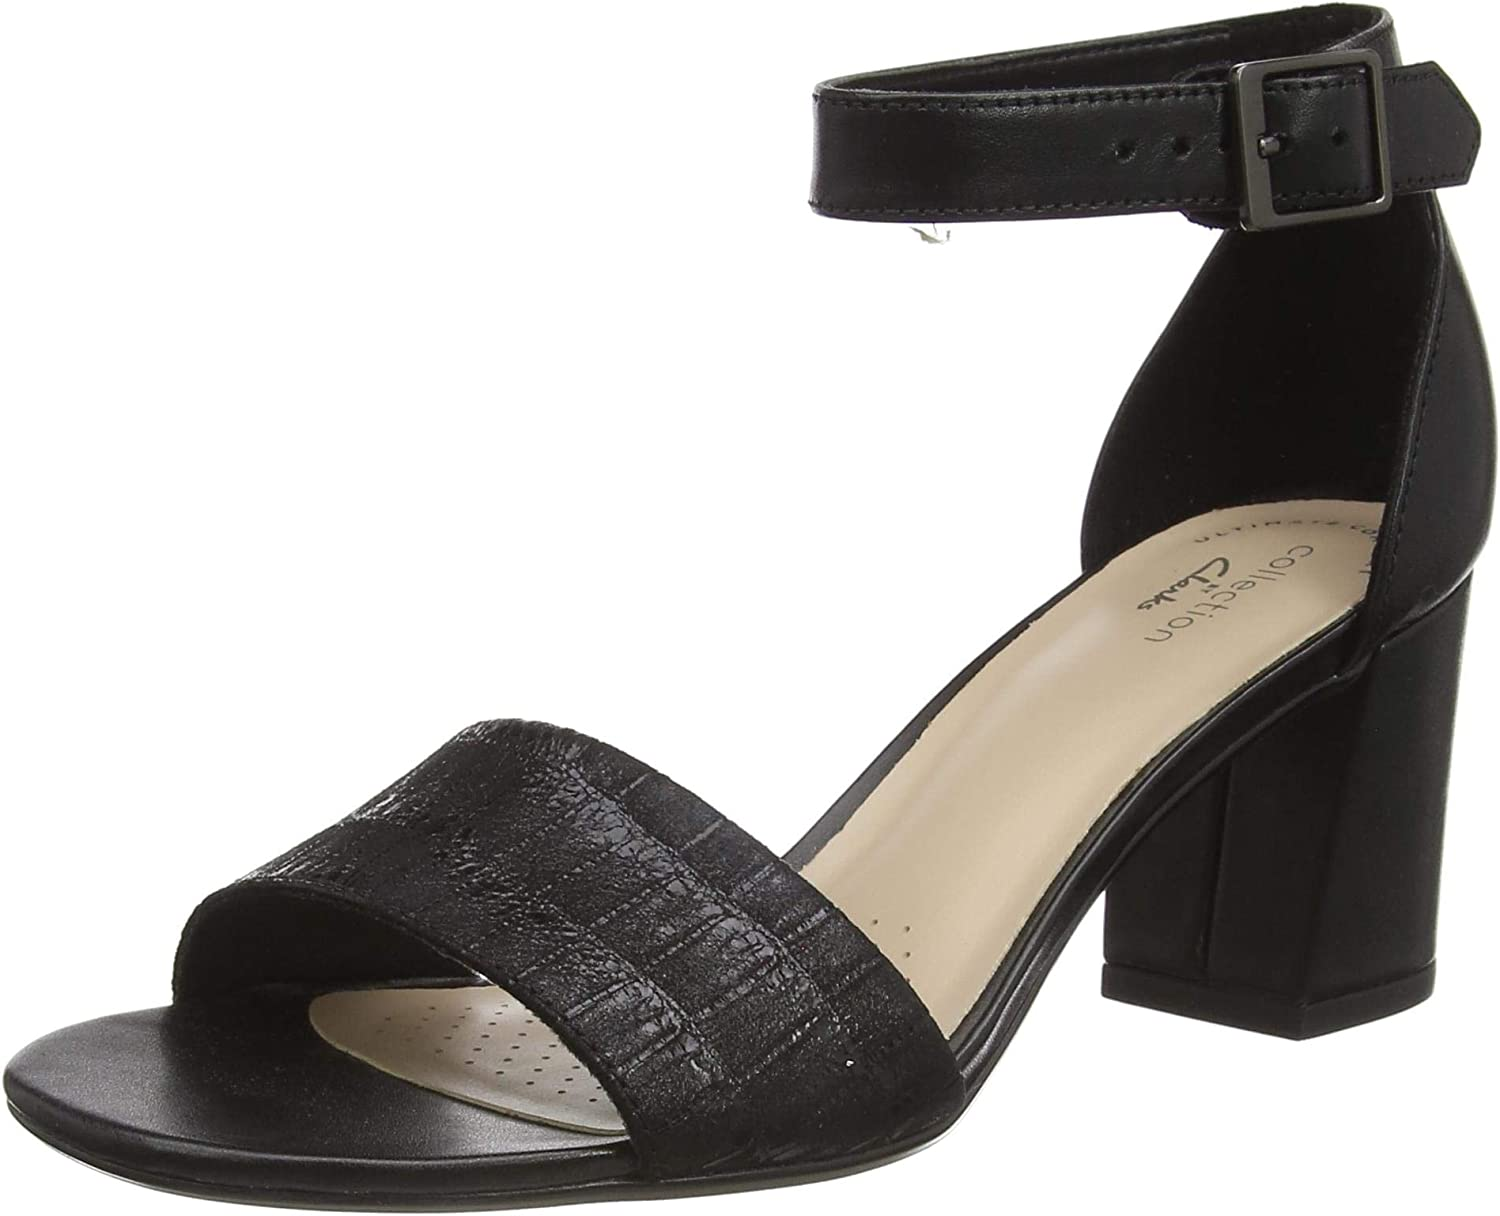 Max 41% OFF Luxury Clarks Women's Ankle Strap Sandals